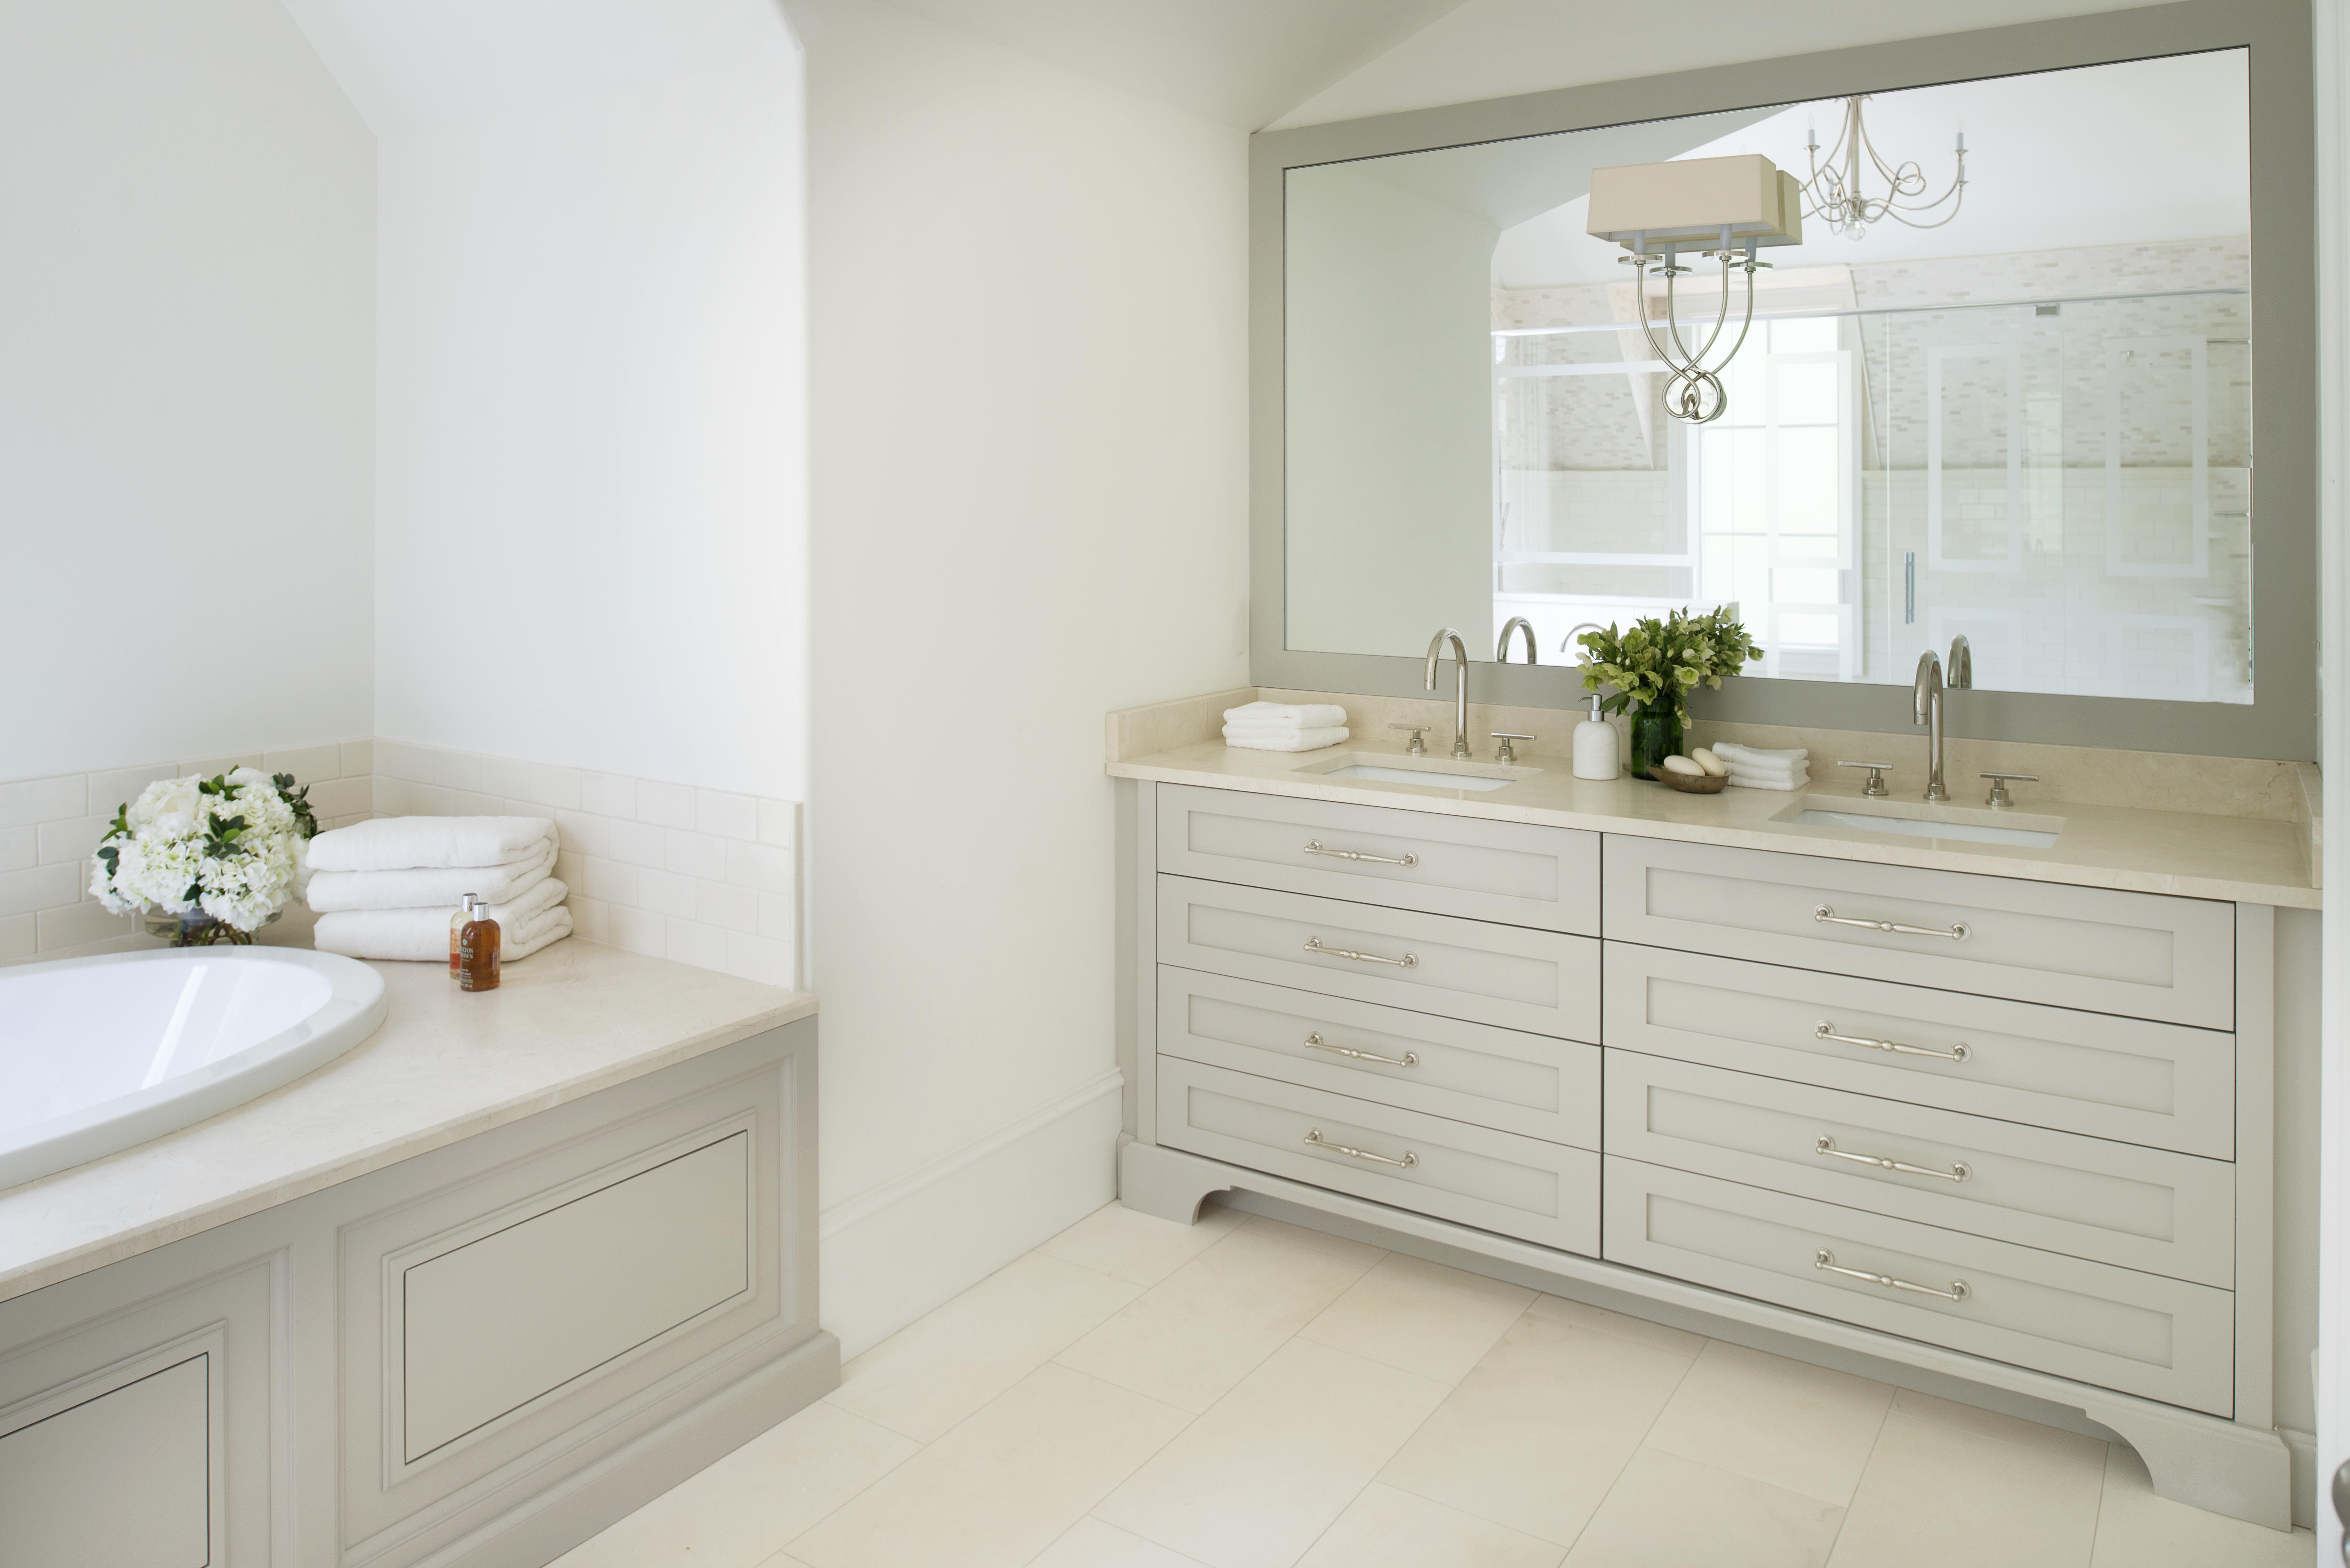 Crema Marfil Marble From Levantina S Own Coto Quarry In Spain In A Guest Bathroom Atlanta Homes Lifestyles Southeaster Guest Bathroom Bathroom Kids Bathroom